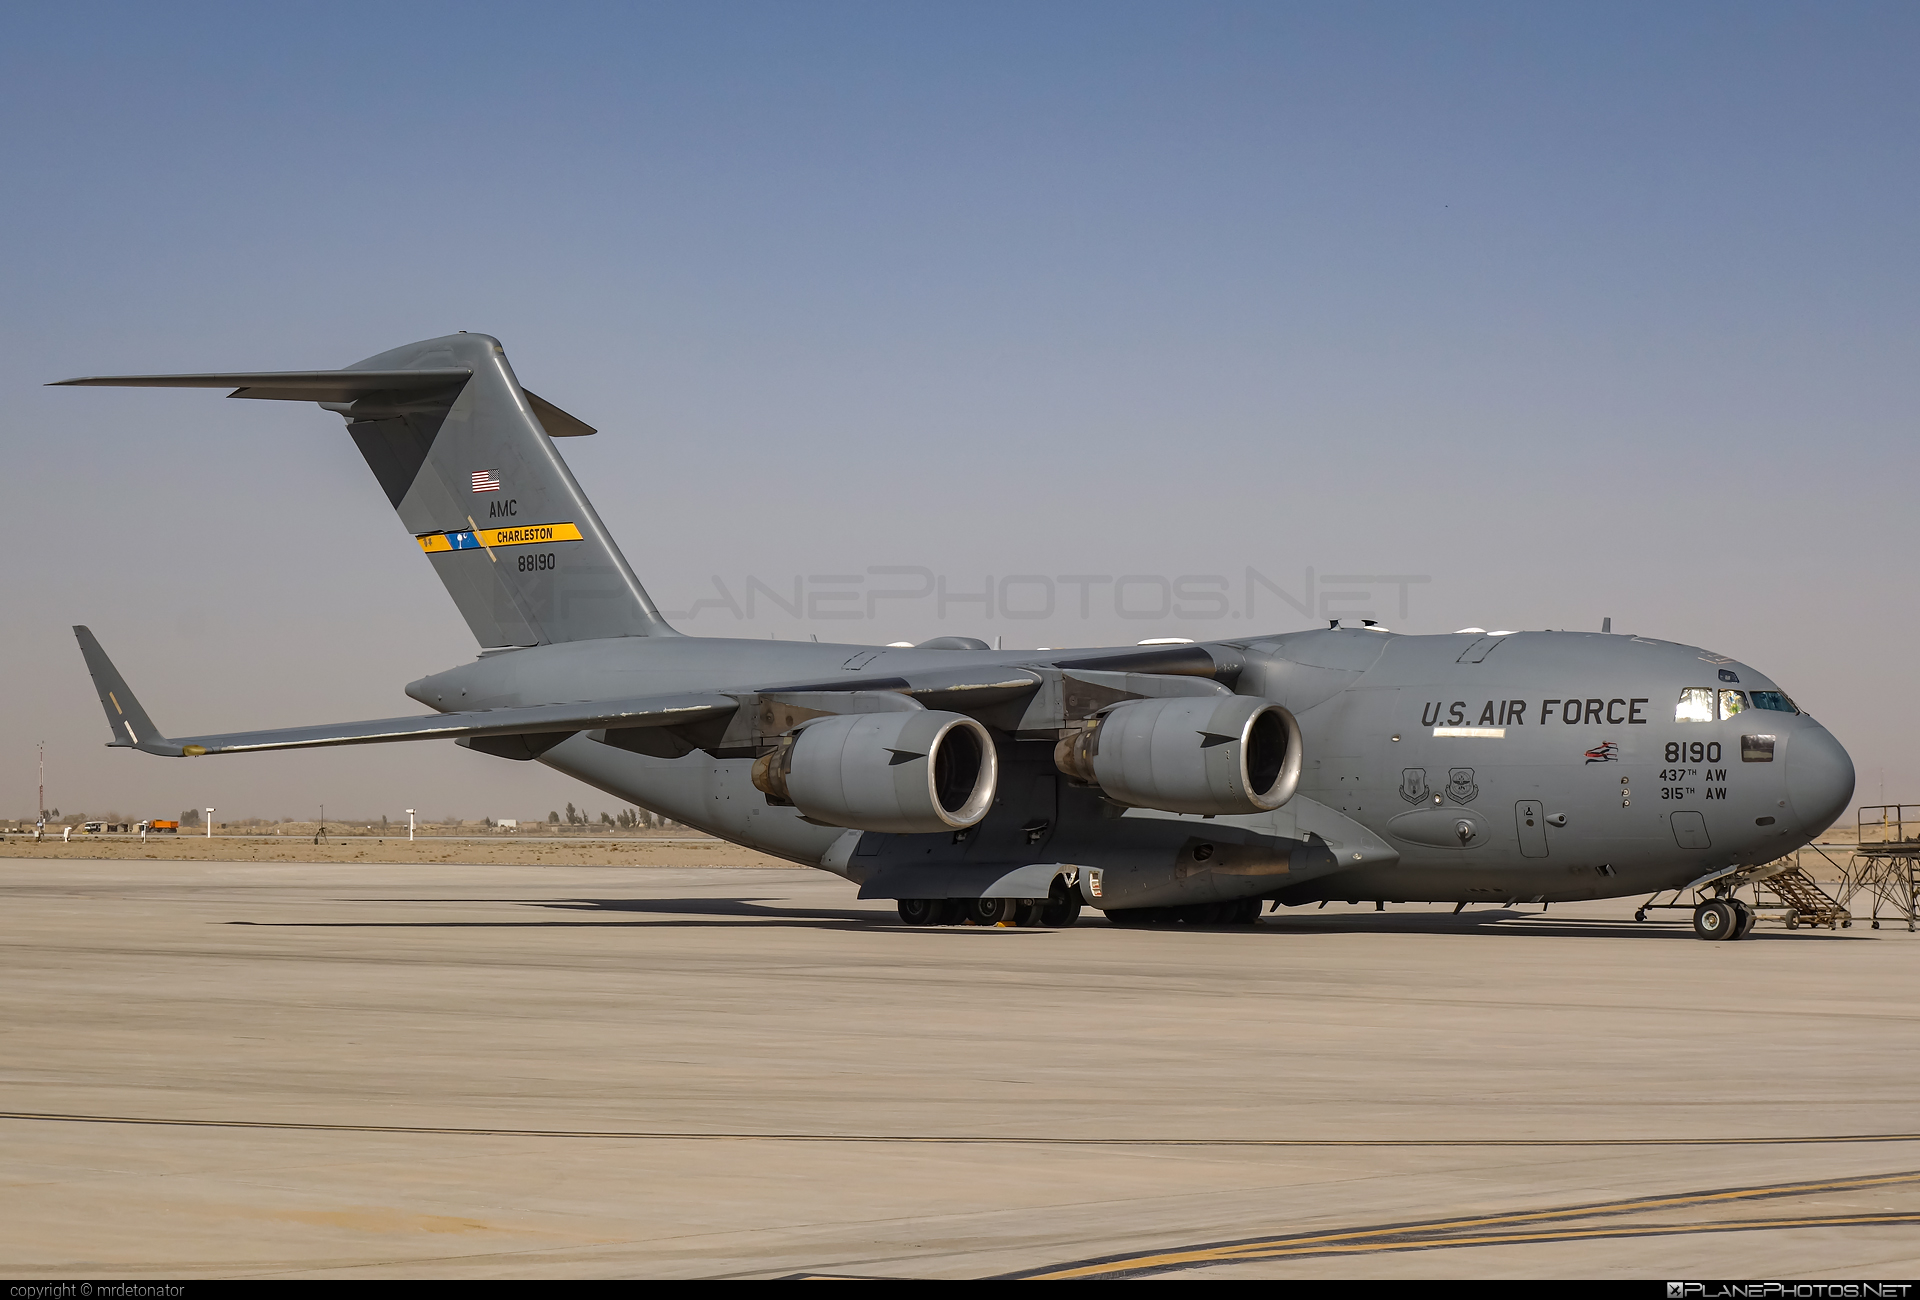 Boeing C-17A Globemaster III - 08-8190 operated by US Air Force (USAF) #boeing #c17 #c17globemaster #globemaster #globemasteriii #usaf #usairforce